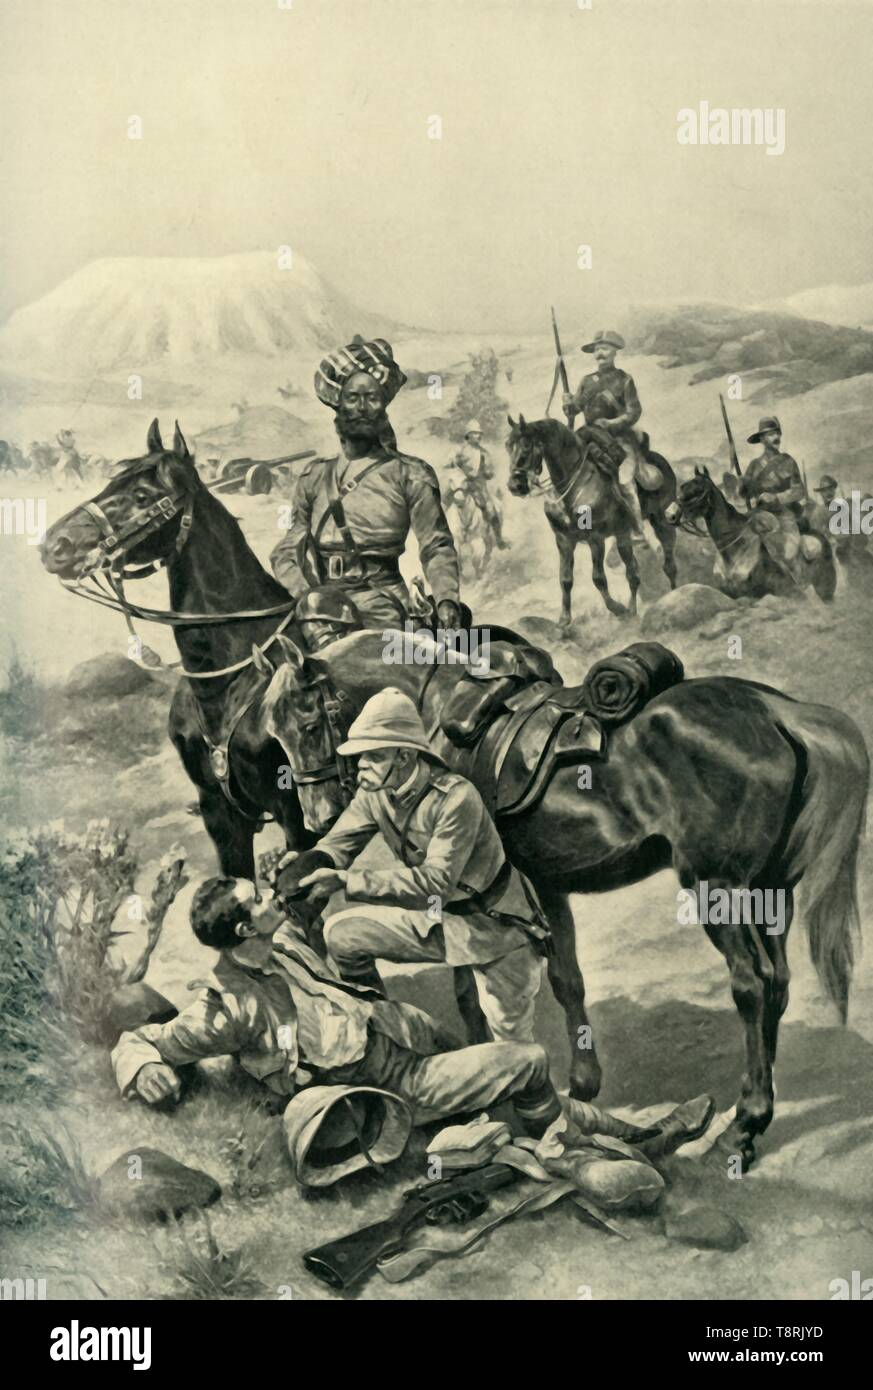 """'Just Like Bobs', (1901). British commander Frederick Sleigh Roberts (1832-1914) fought the Boers in South Africa, 1899-1900. Here 'Bobs', as he was nicknamed, gives water to a wounded soldier, in a slightly hagiographical depiction. From """"The Life and Deeds of Earl Roberts, Vol. IV. - To Lord Roberts's Reign in Pall Mall"""", by J. Maclaren Cobban. [T. C. & E. C. Jack, Edinburgh, 1901] - Stock Image"""